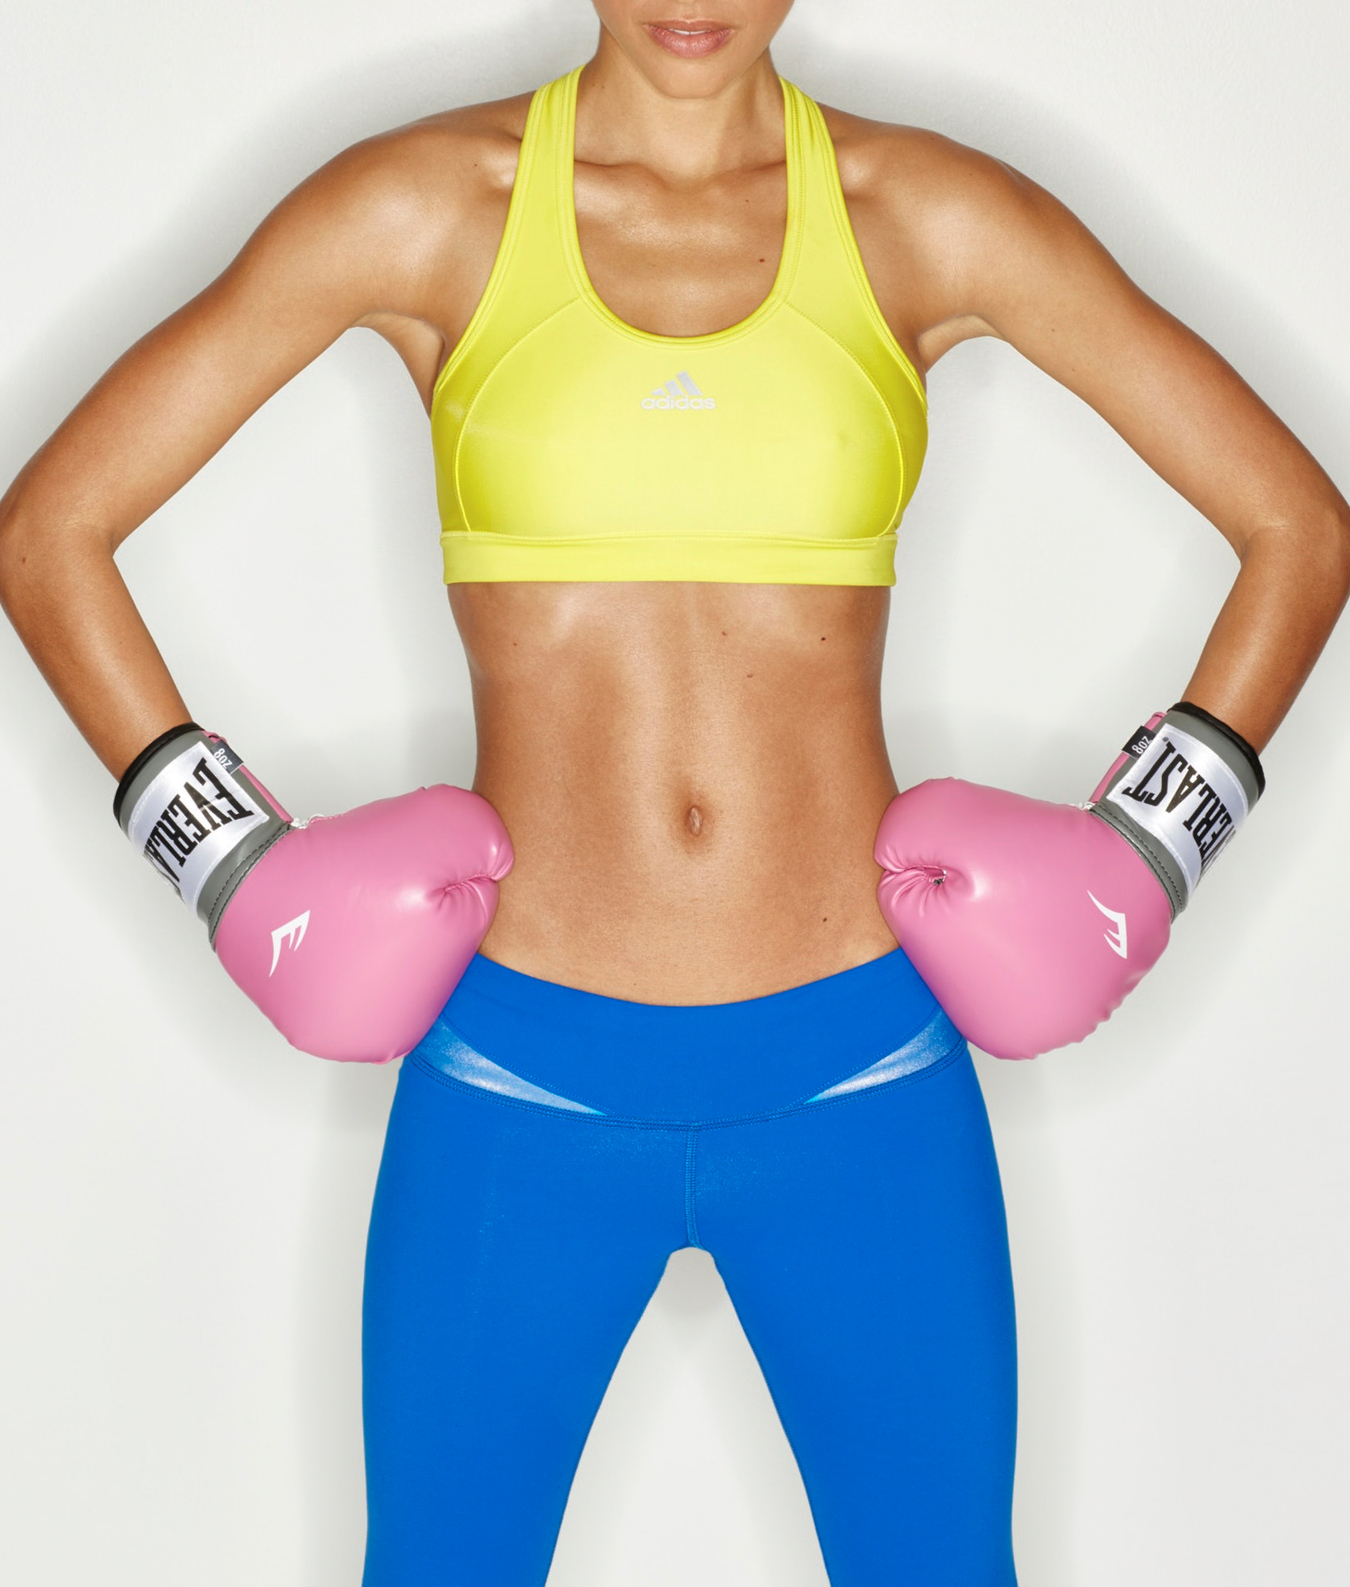 Boxing_Gloves_468_retouch-1web.jpg